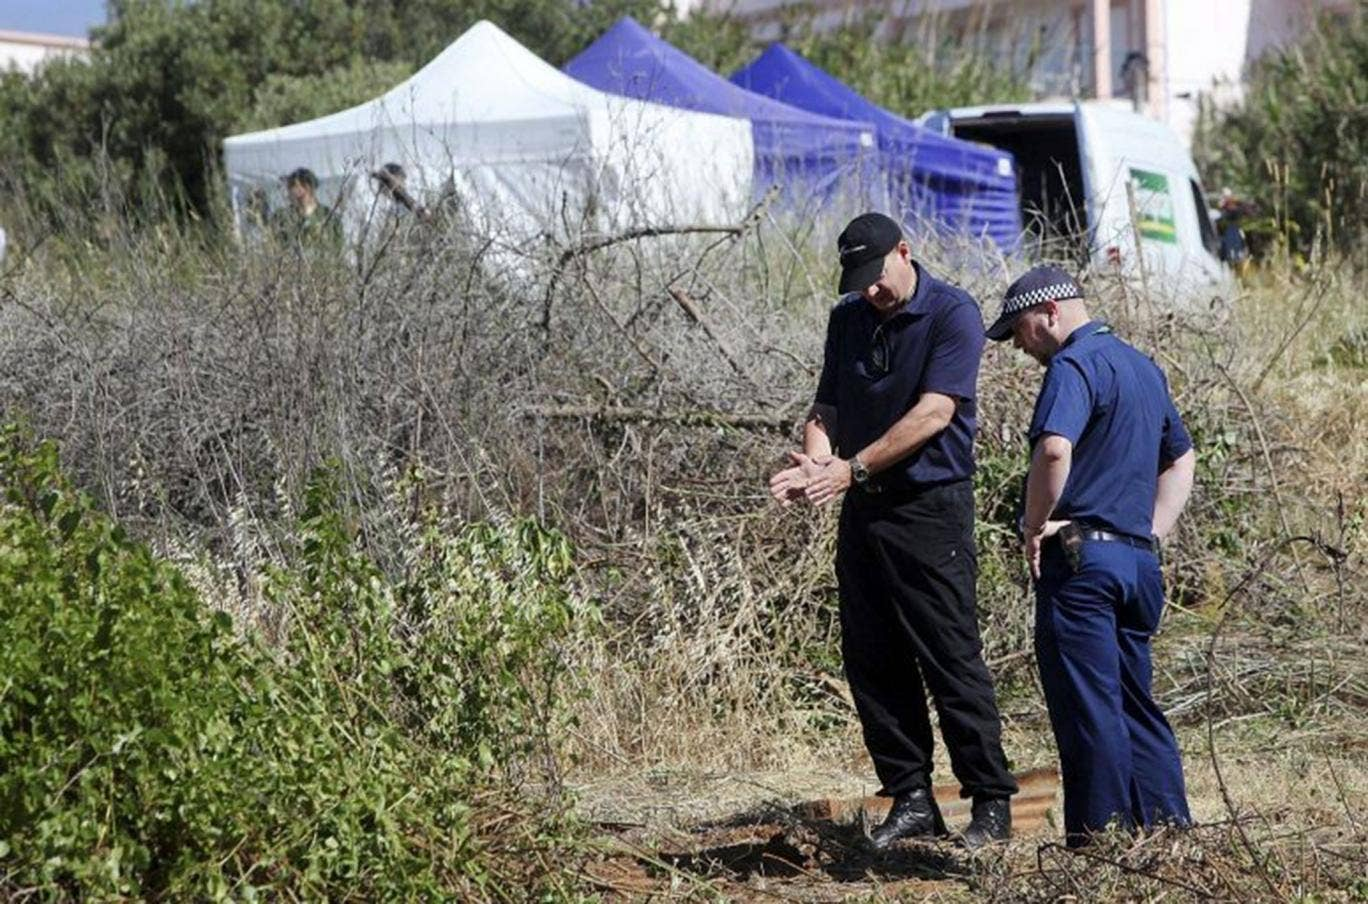 British police search scrubland next to a newly-erected tent in the search for Madeleine McCann